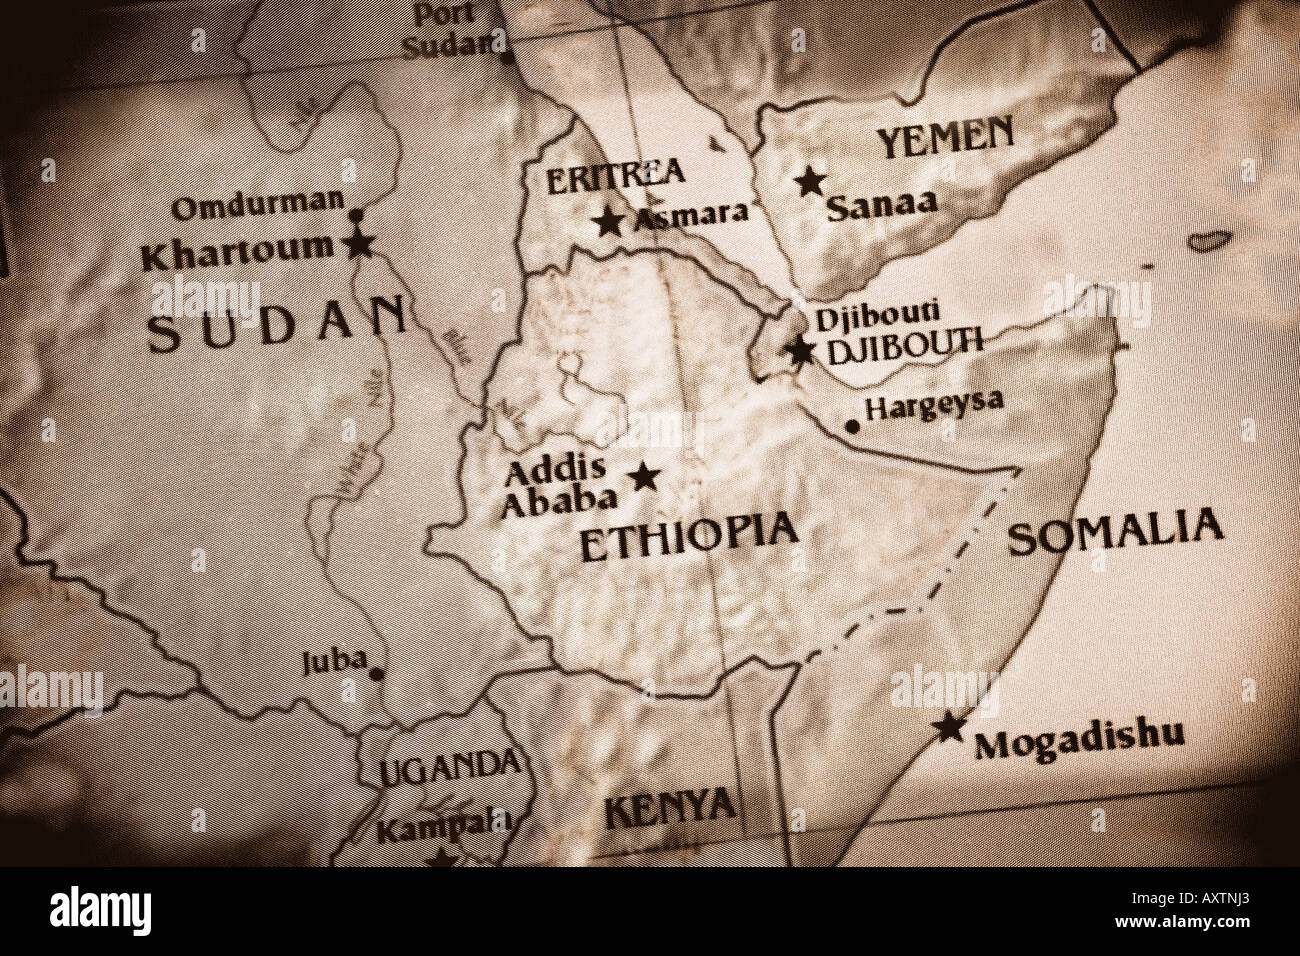 Ethiopia map stock photos ethiopia map stock images alamy current map showing the countries of sudan ethiopia kenya somalia uganda gumiabroncs Image collections